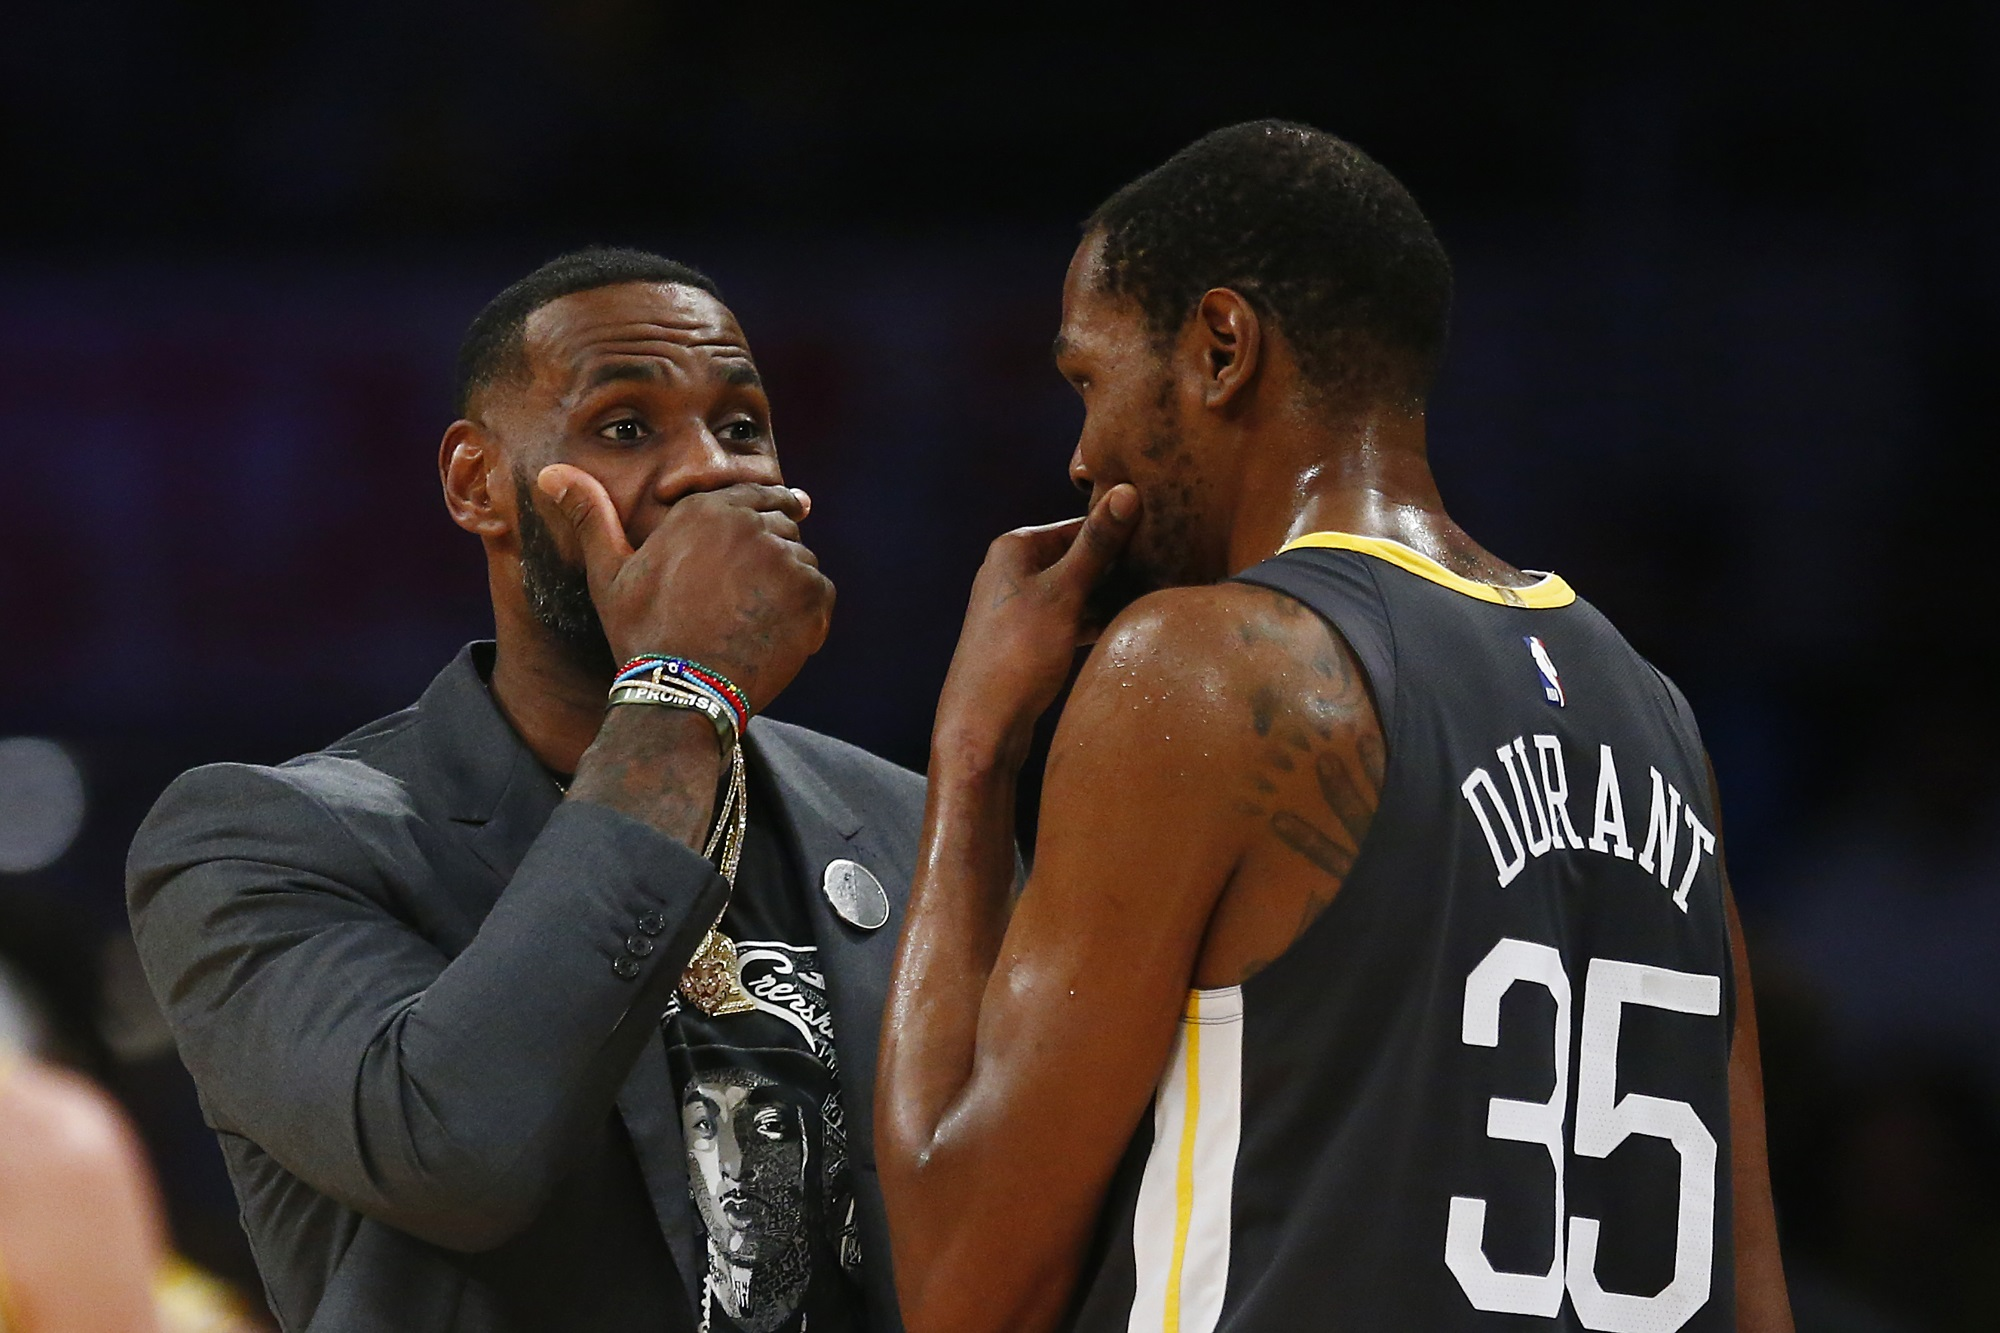 nba-free-agency-2019-LeBron James and Kevin Durant, Los Angeles Lakers vs Golden State Warriors at Staples Center